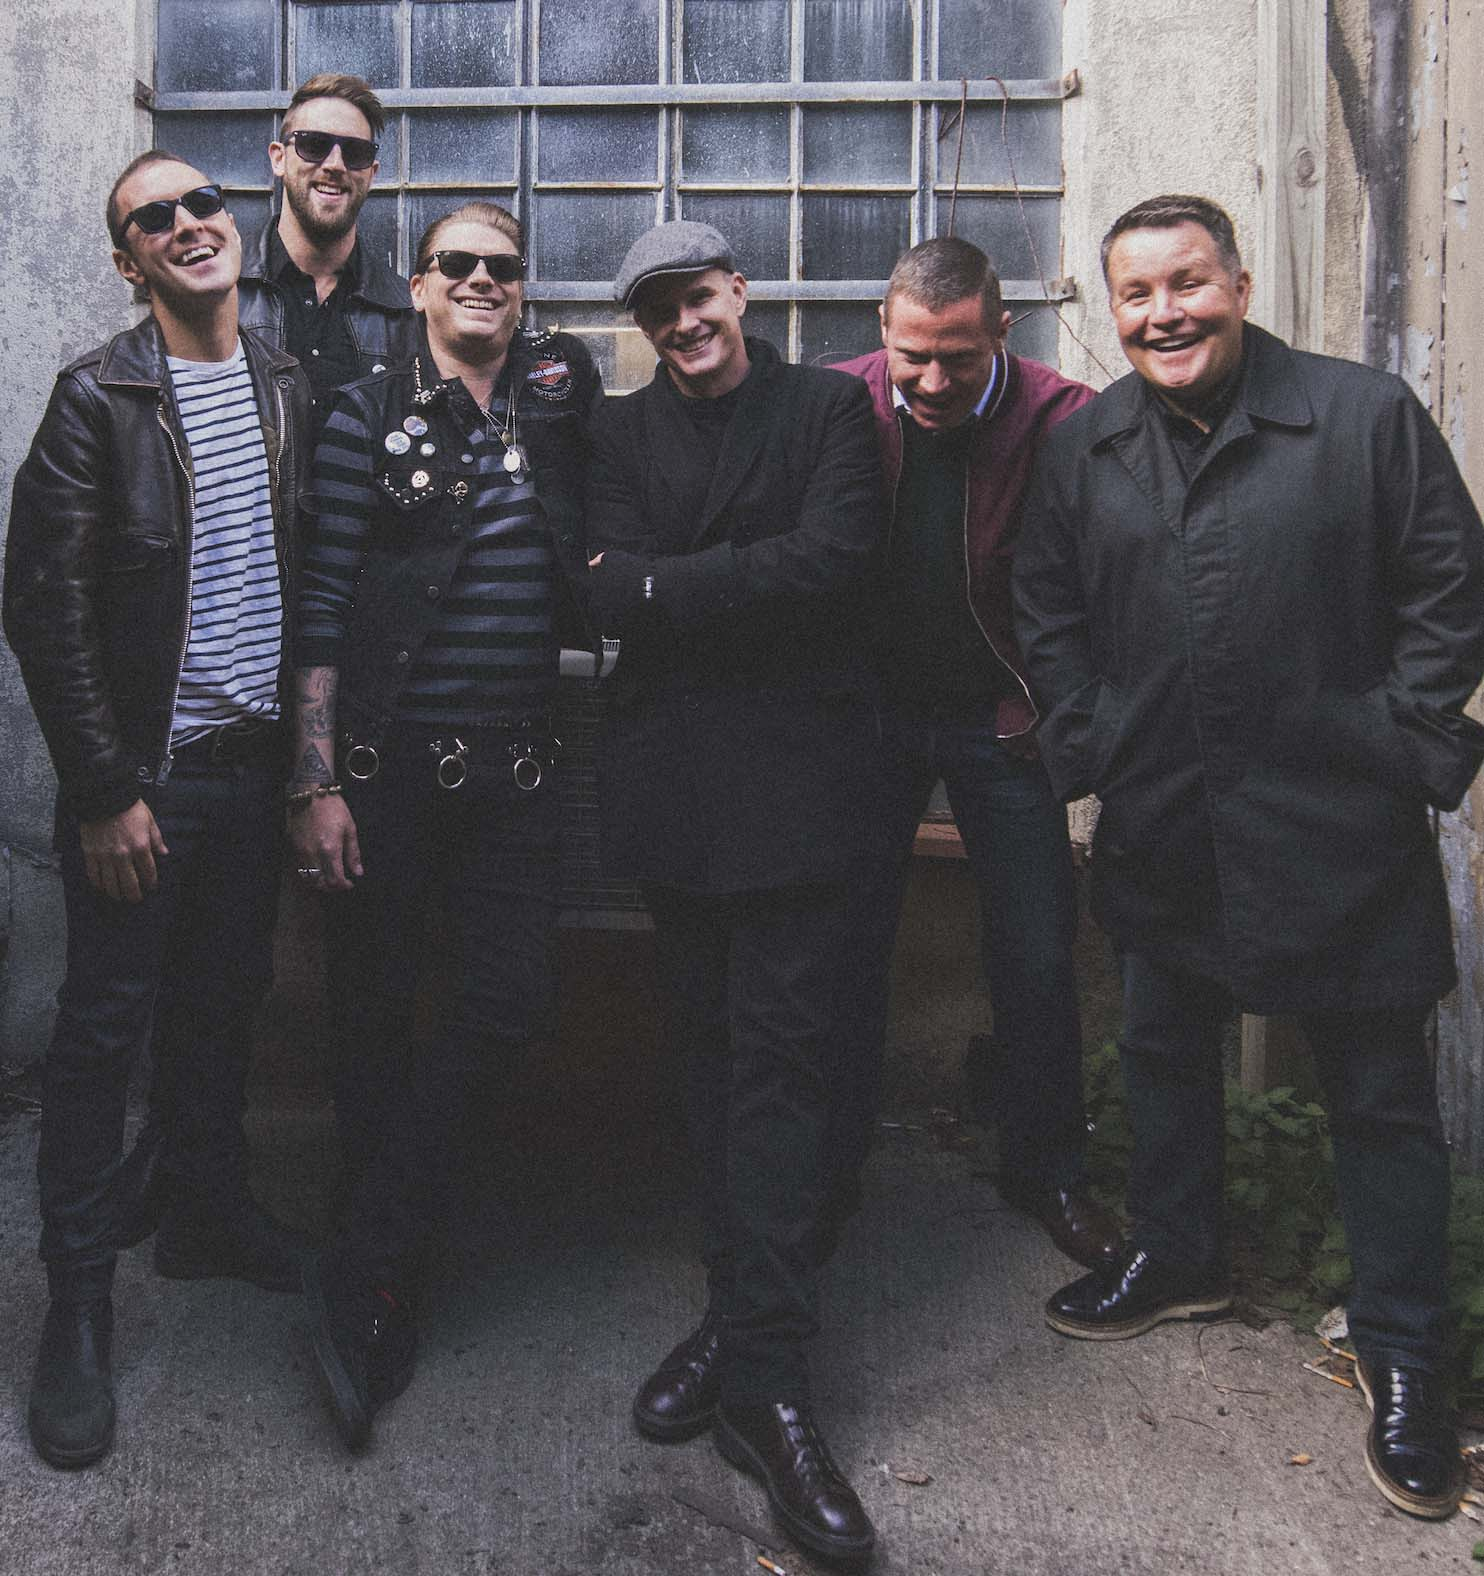 Dropkick Murphys sound as hungry as ever